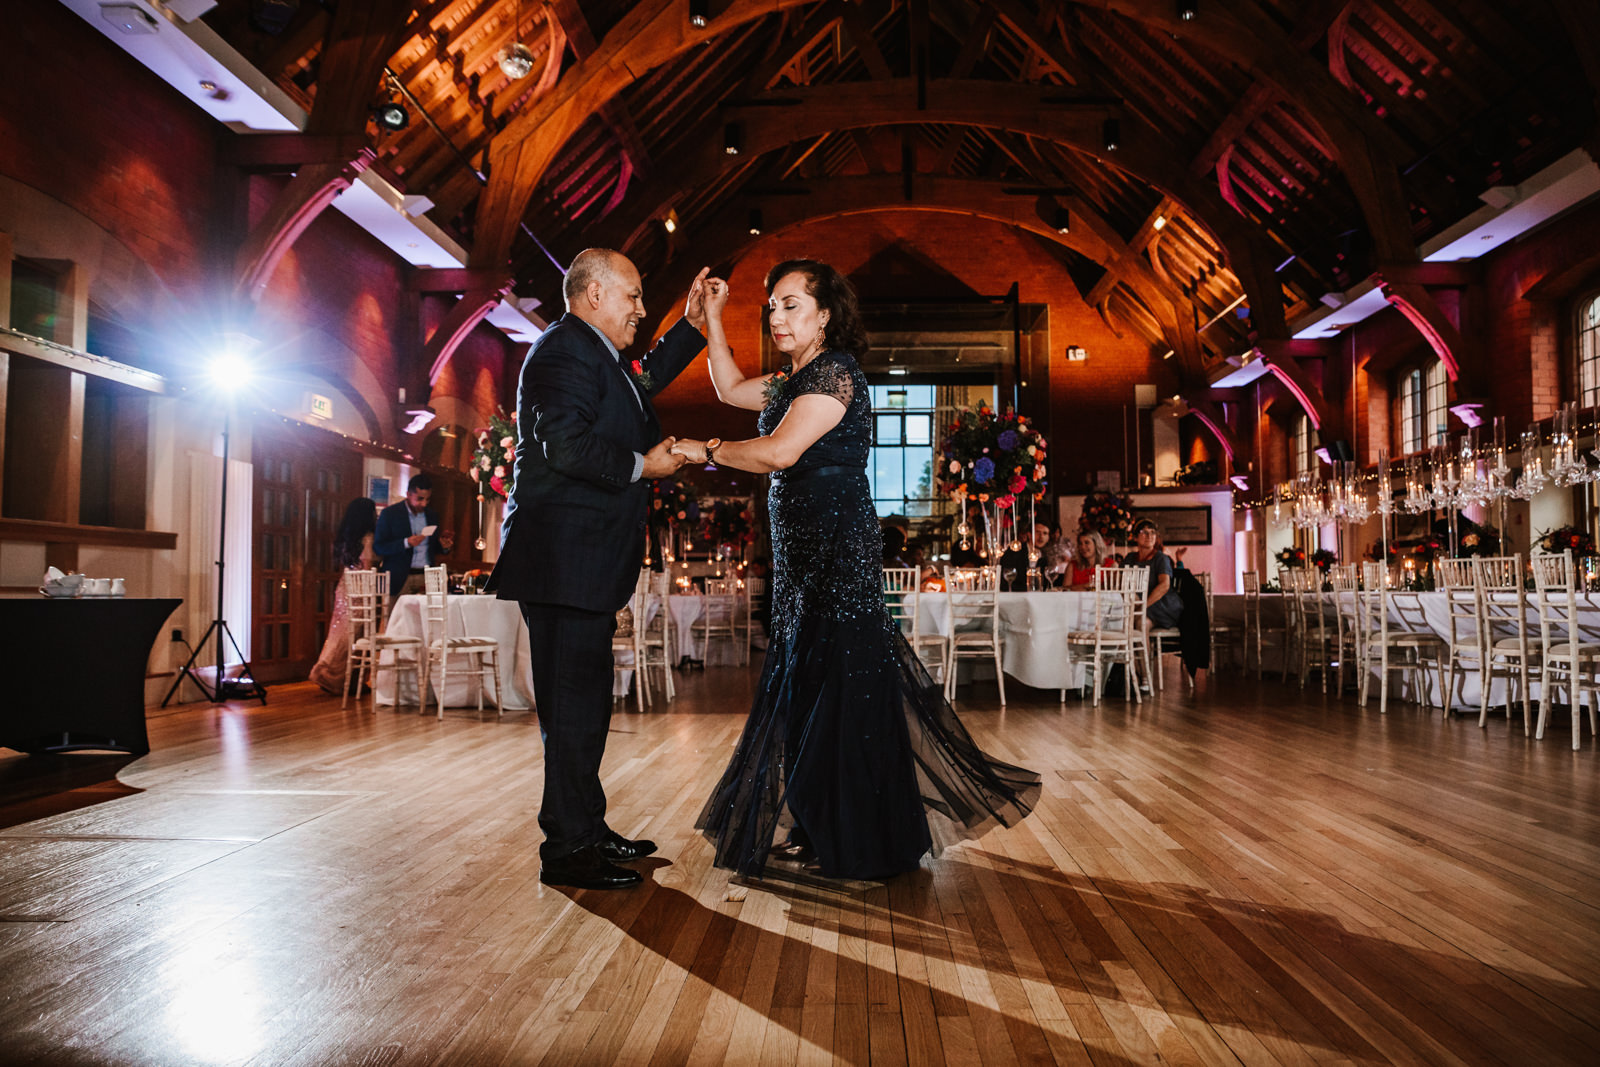 Mum and dad dance